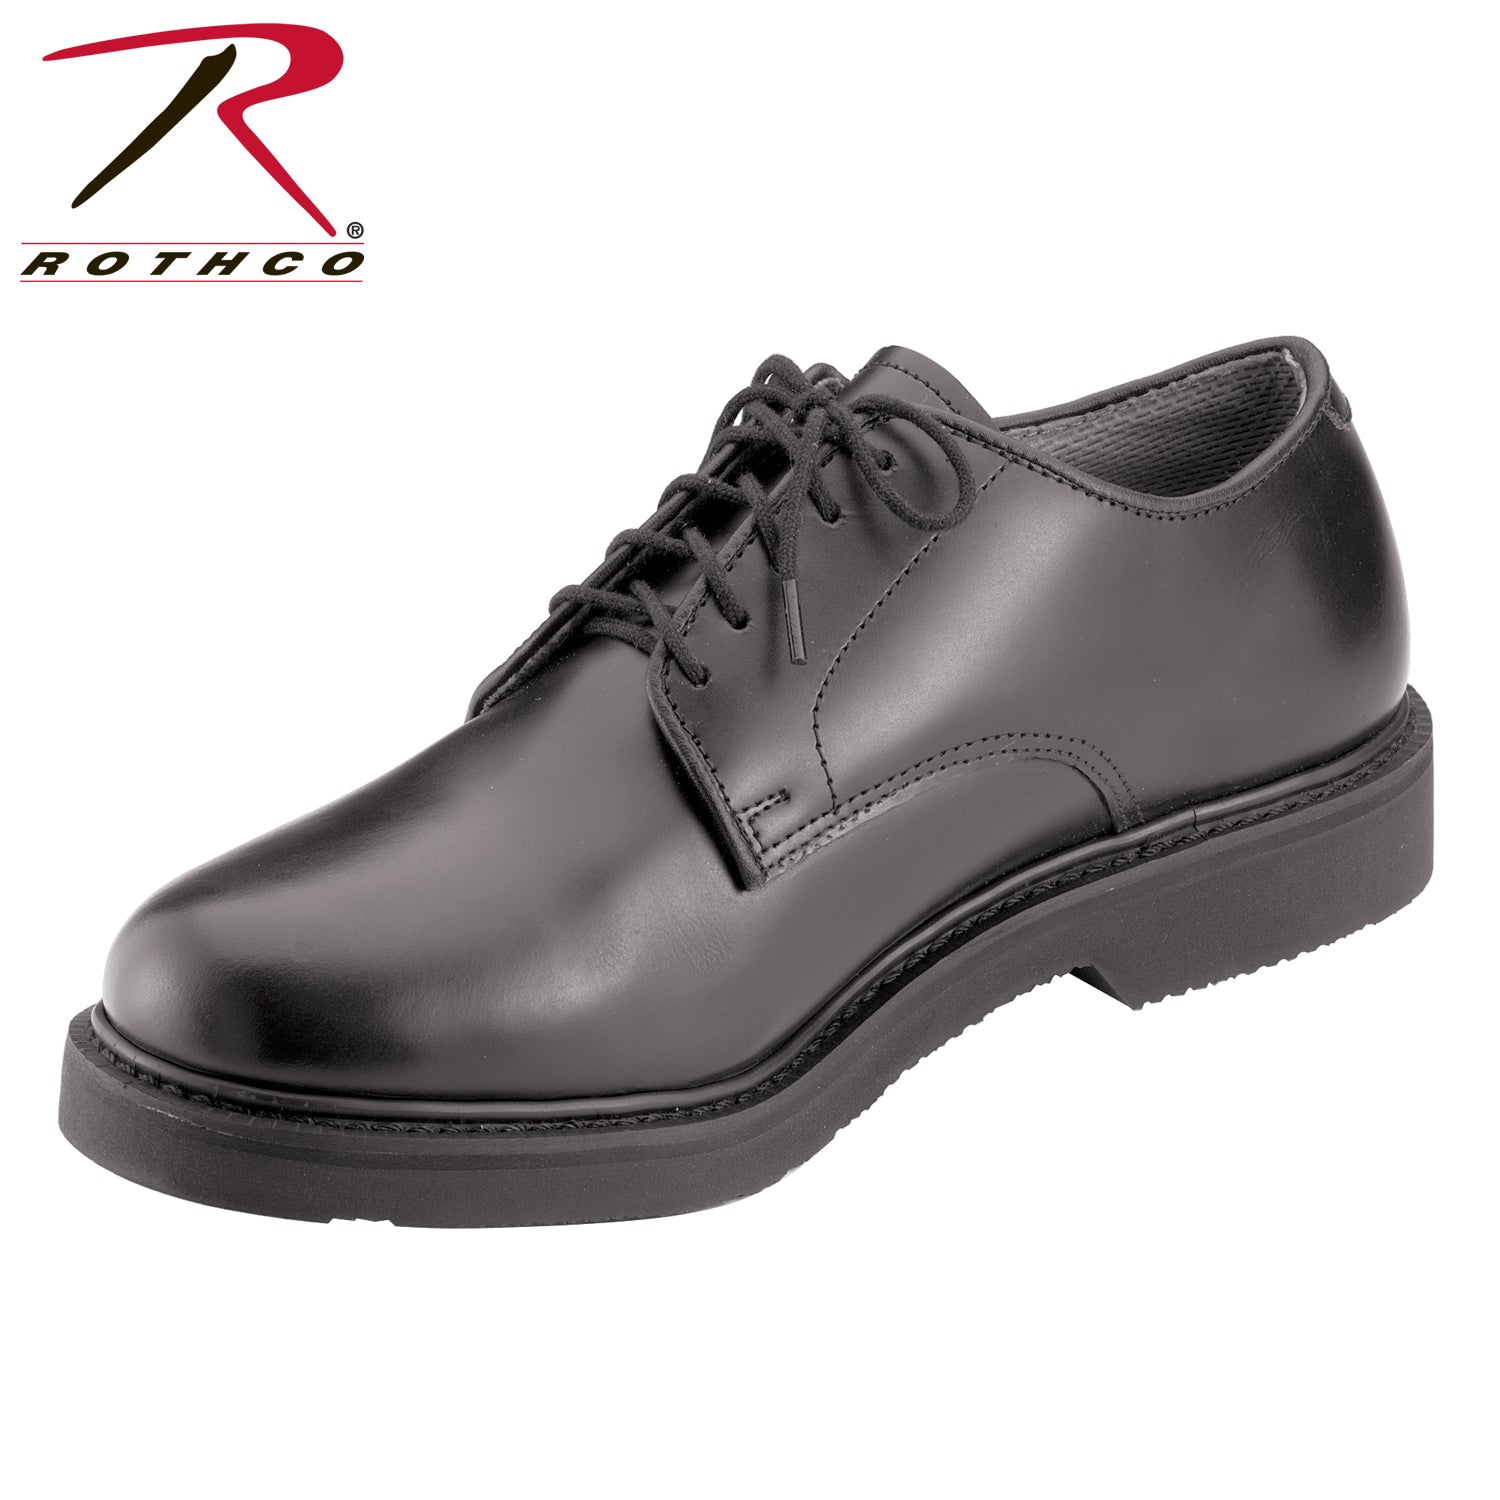 Rothco Military Uniform Oxford Leather Shoes - red-diamond-uniform-police-supply